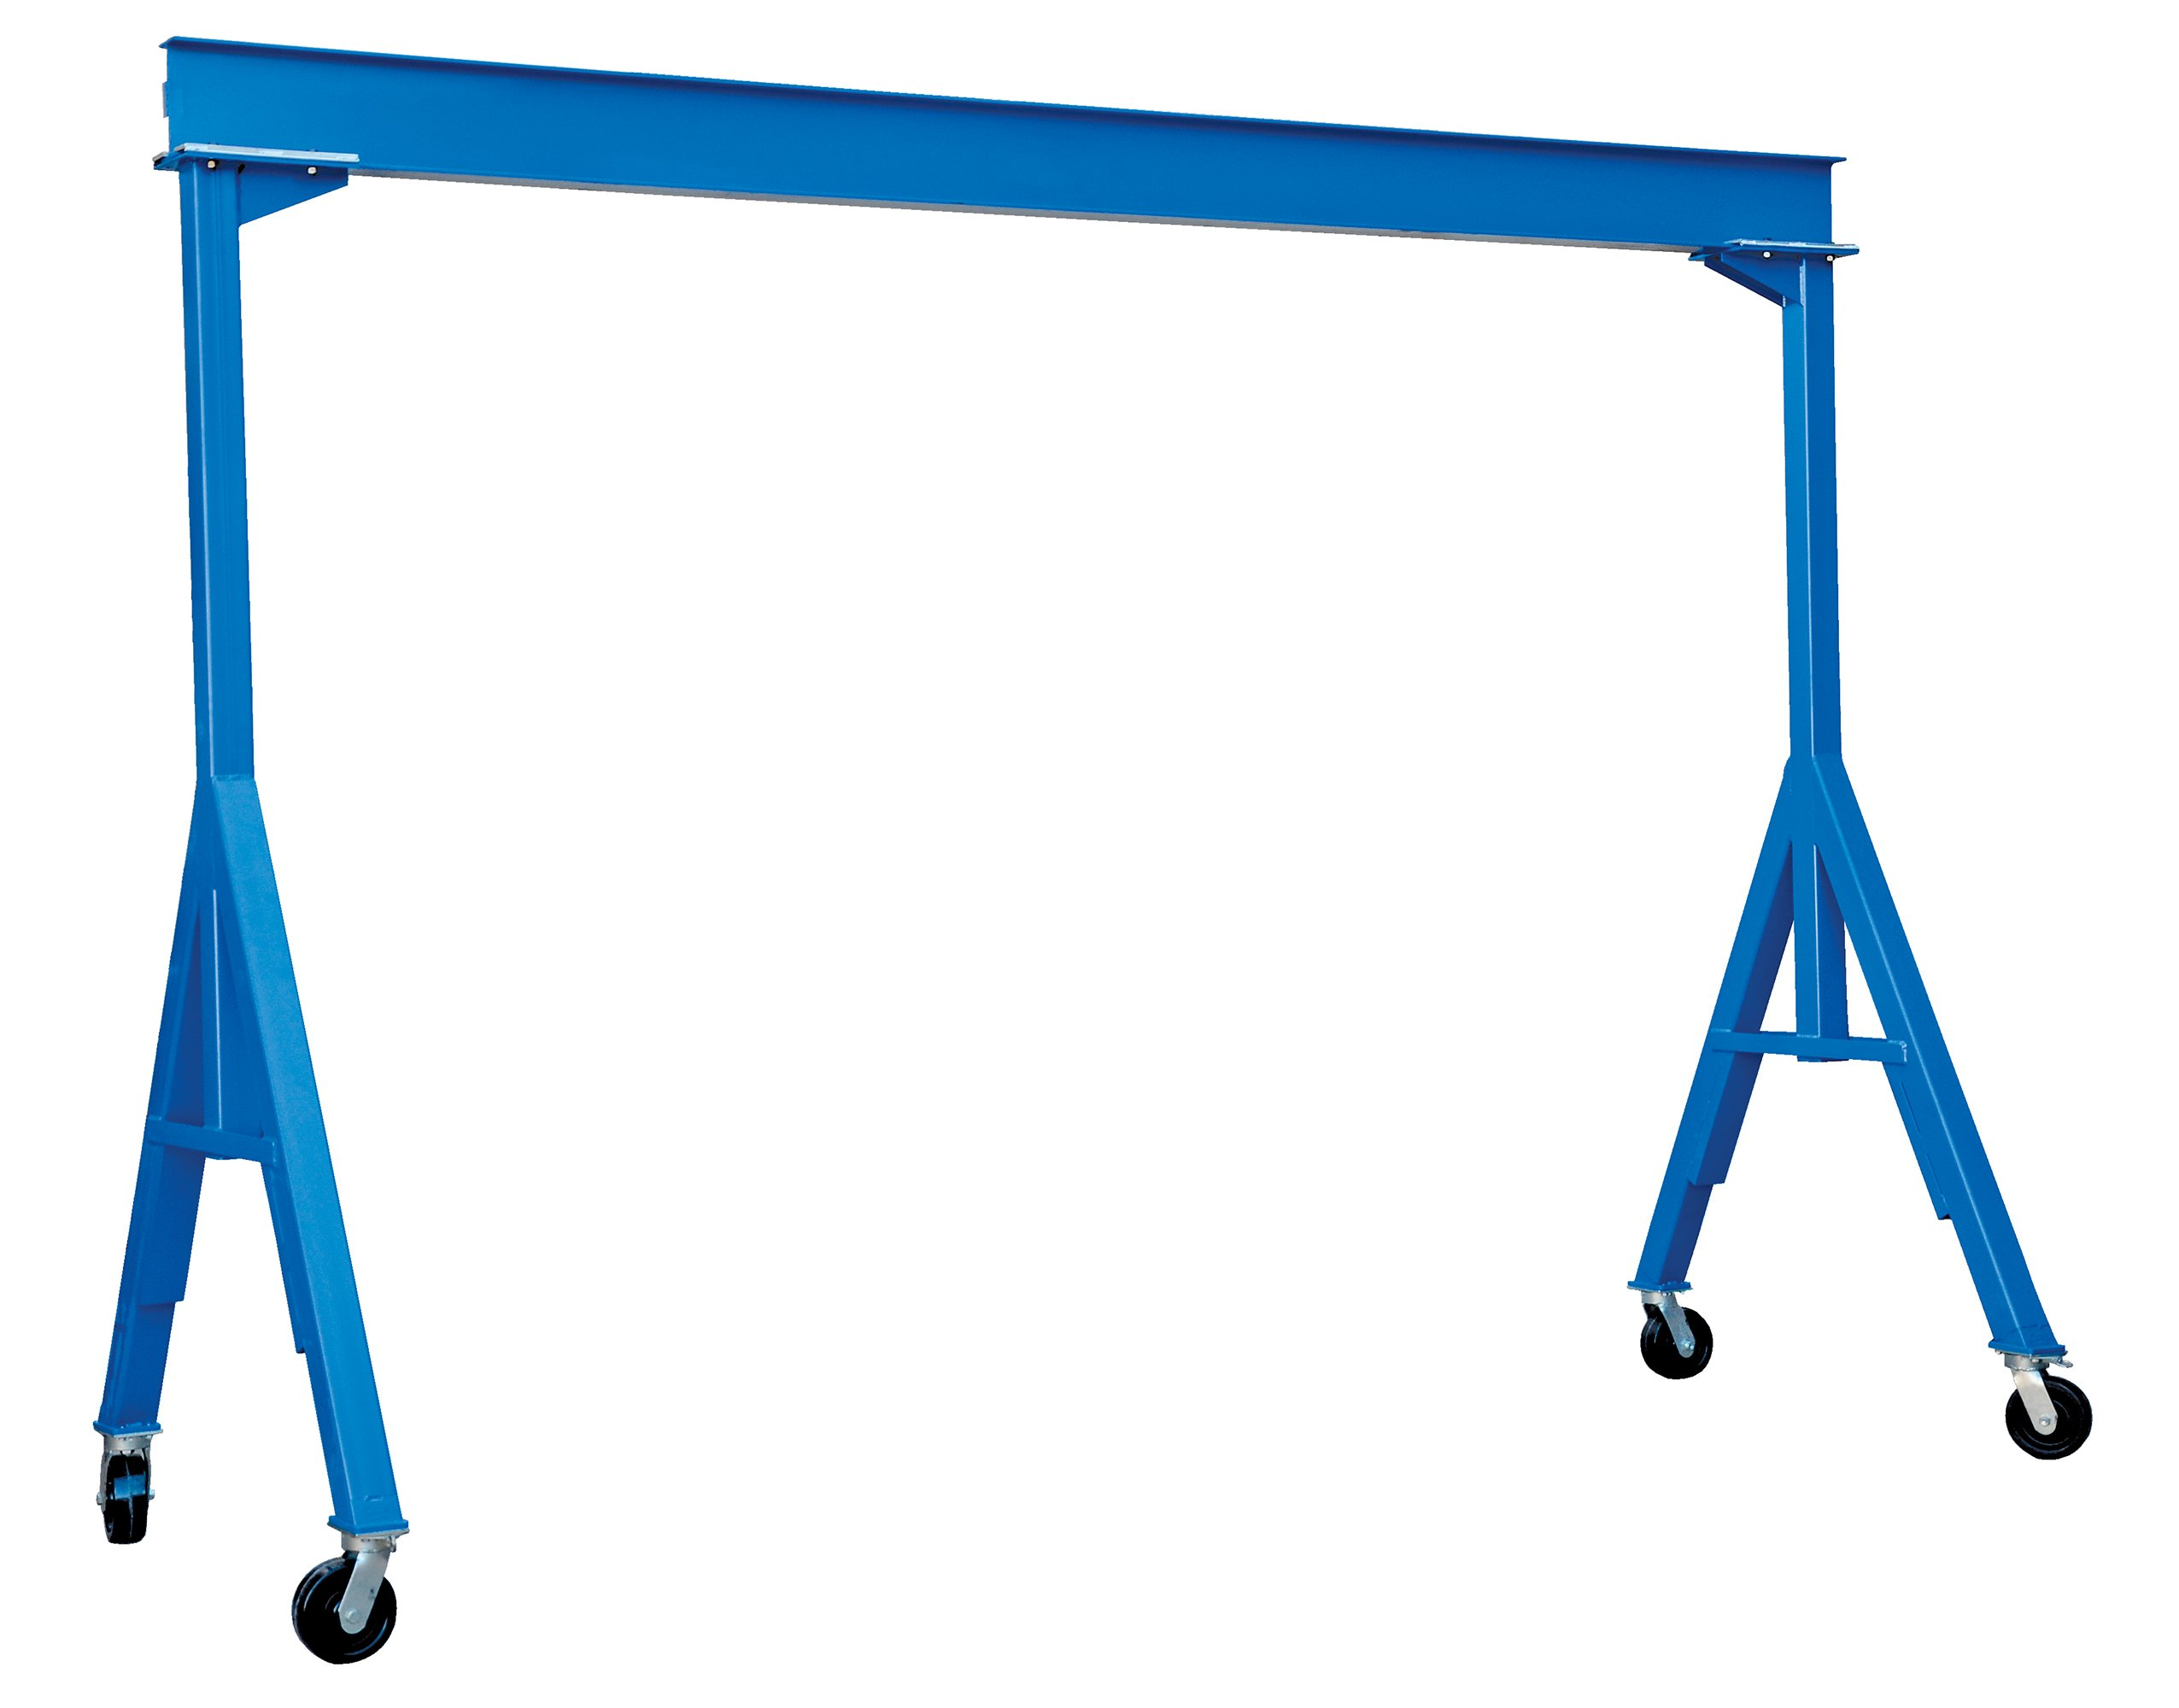 Vestil FHS-4-15 Fixed Height Steel Gantry Crane, 4000 lbs Capacity, 15' Length x 8'' Height Beam